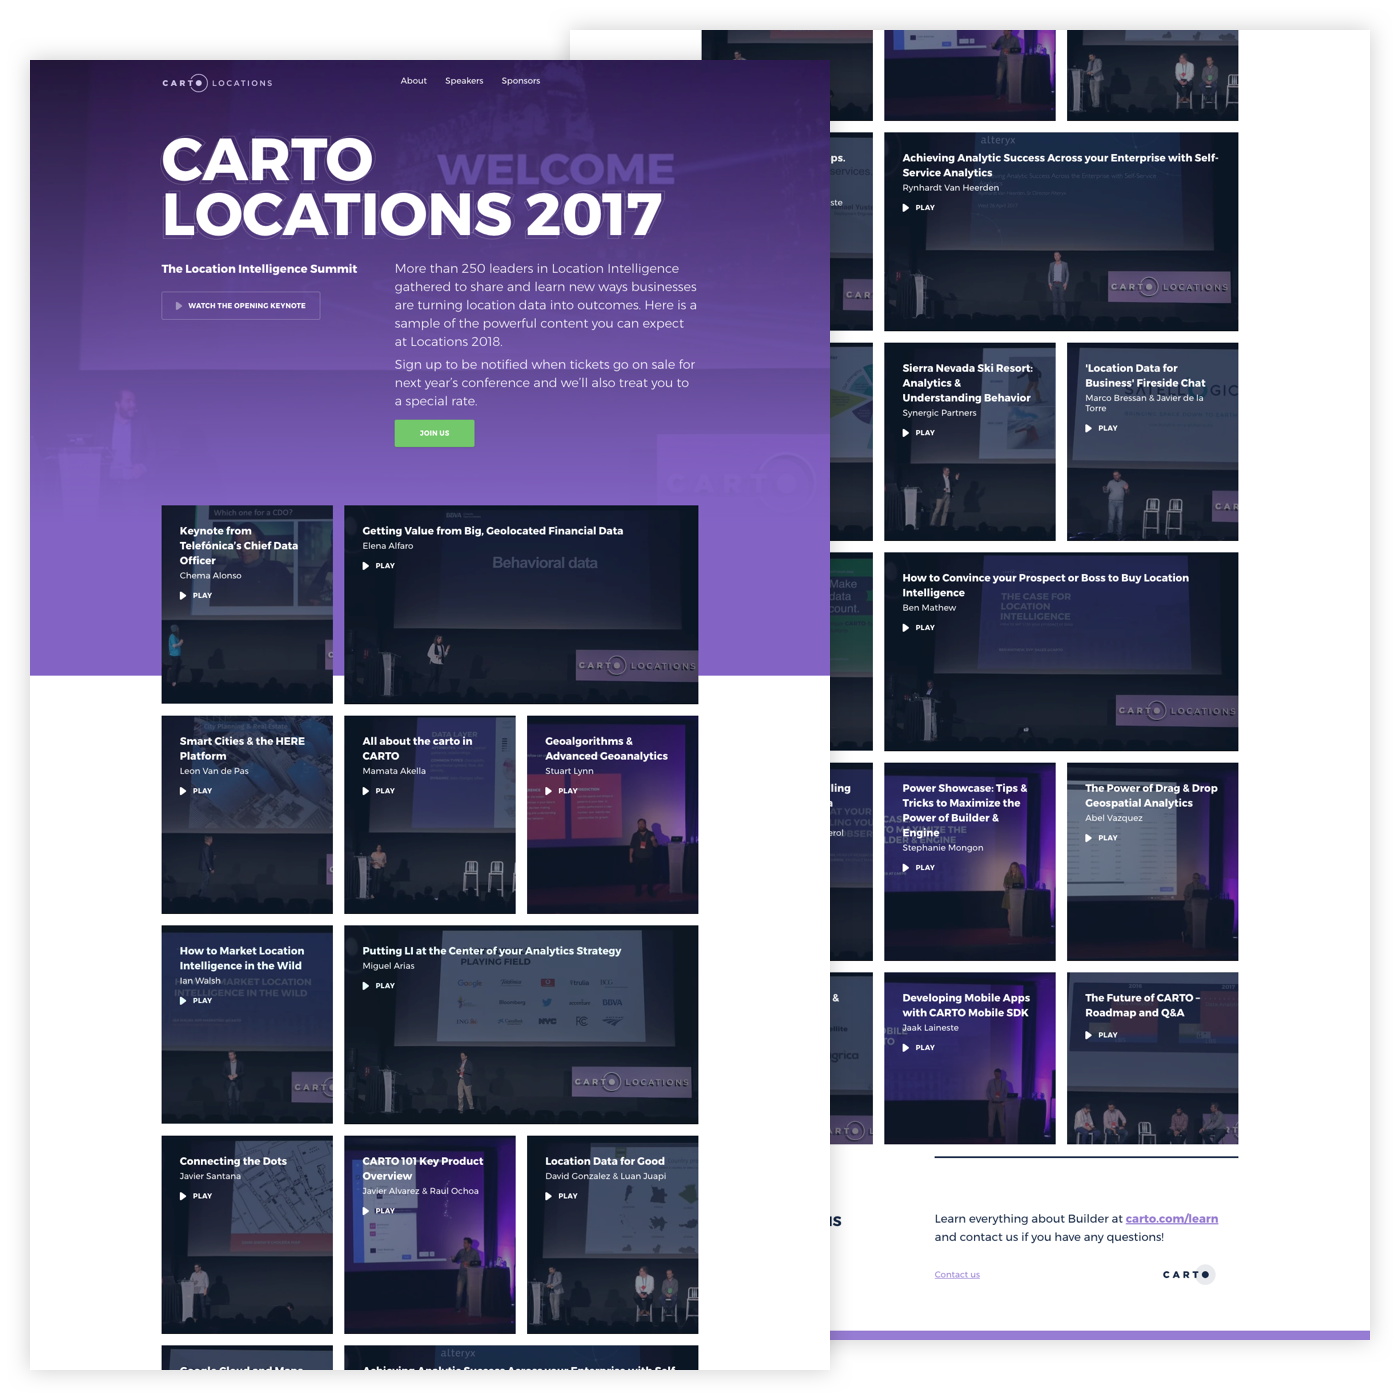 Carto Locations website showing the video recordings of the talks